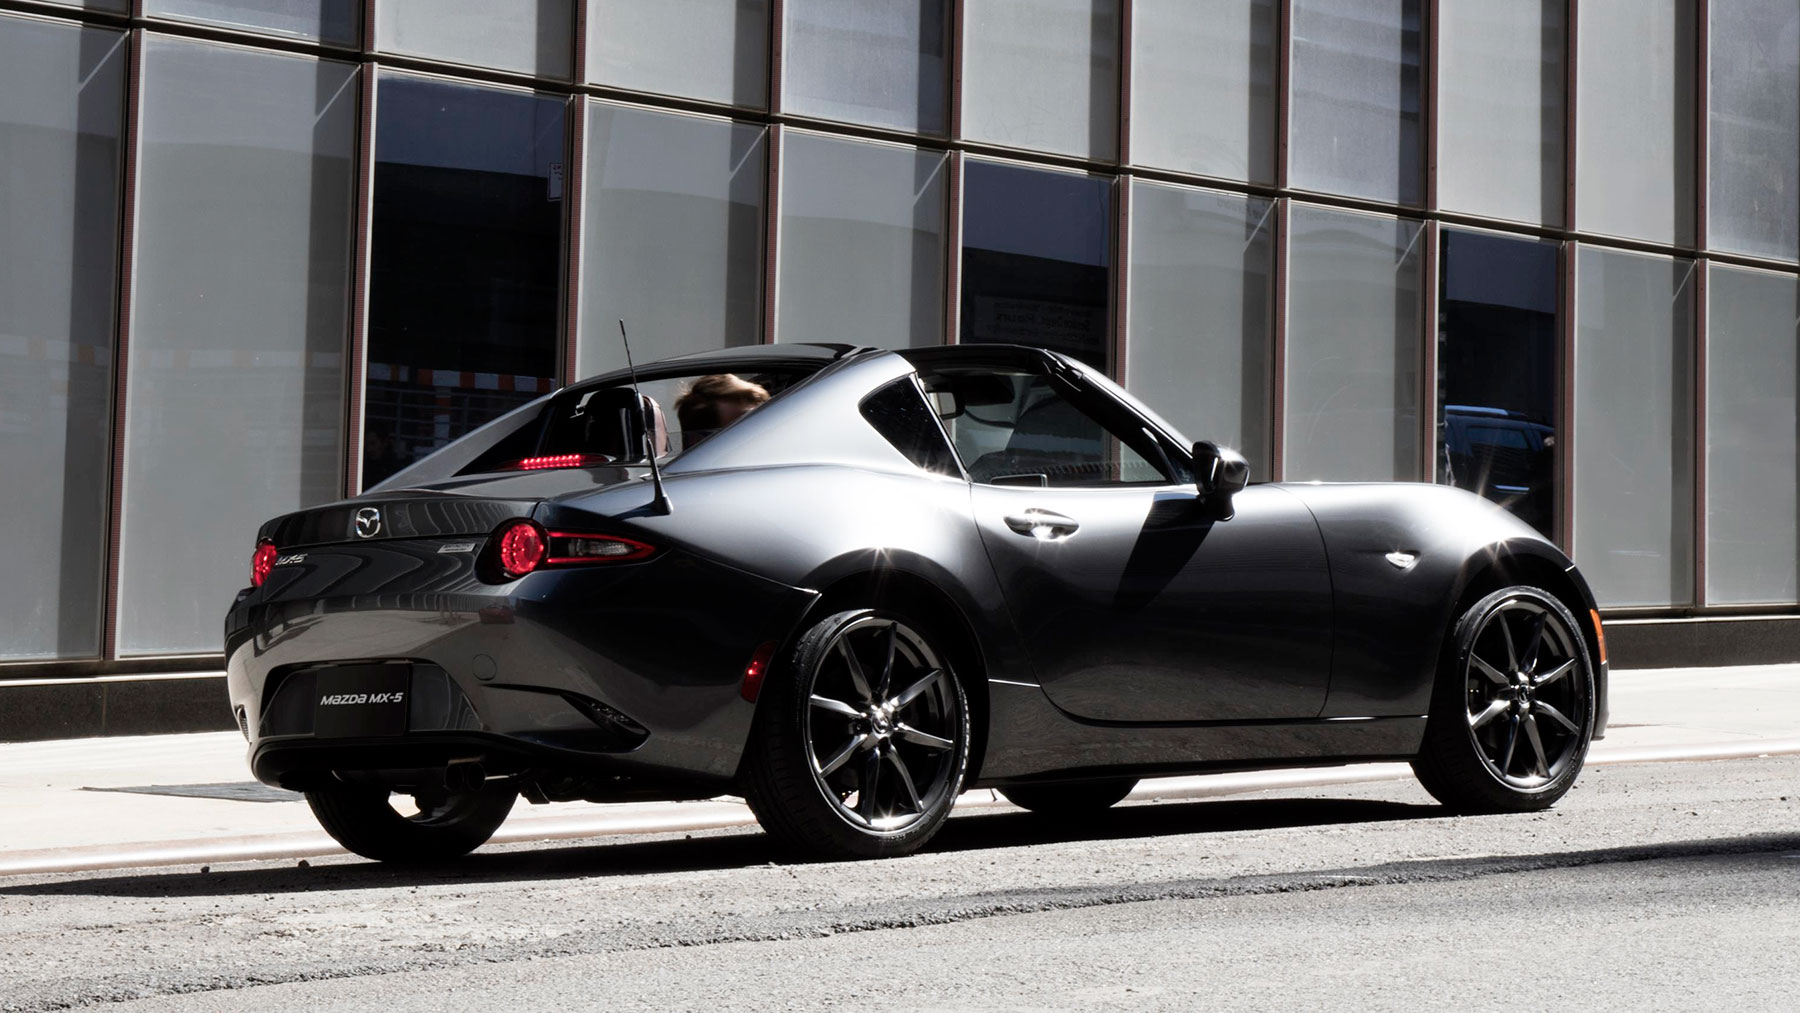 2017 Mazda MX-5 Miata Rear Dark Gray Exterior